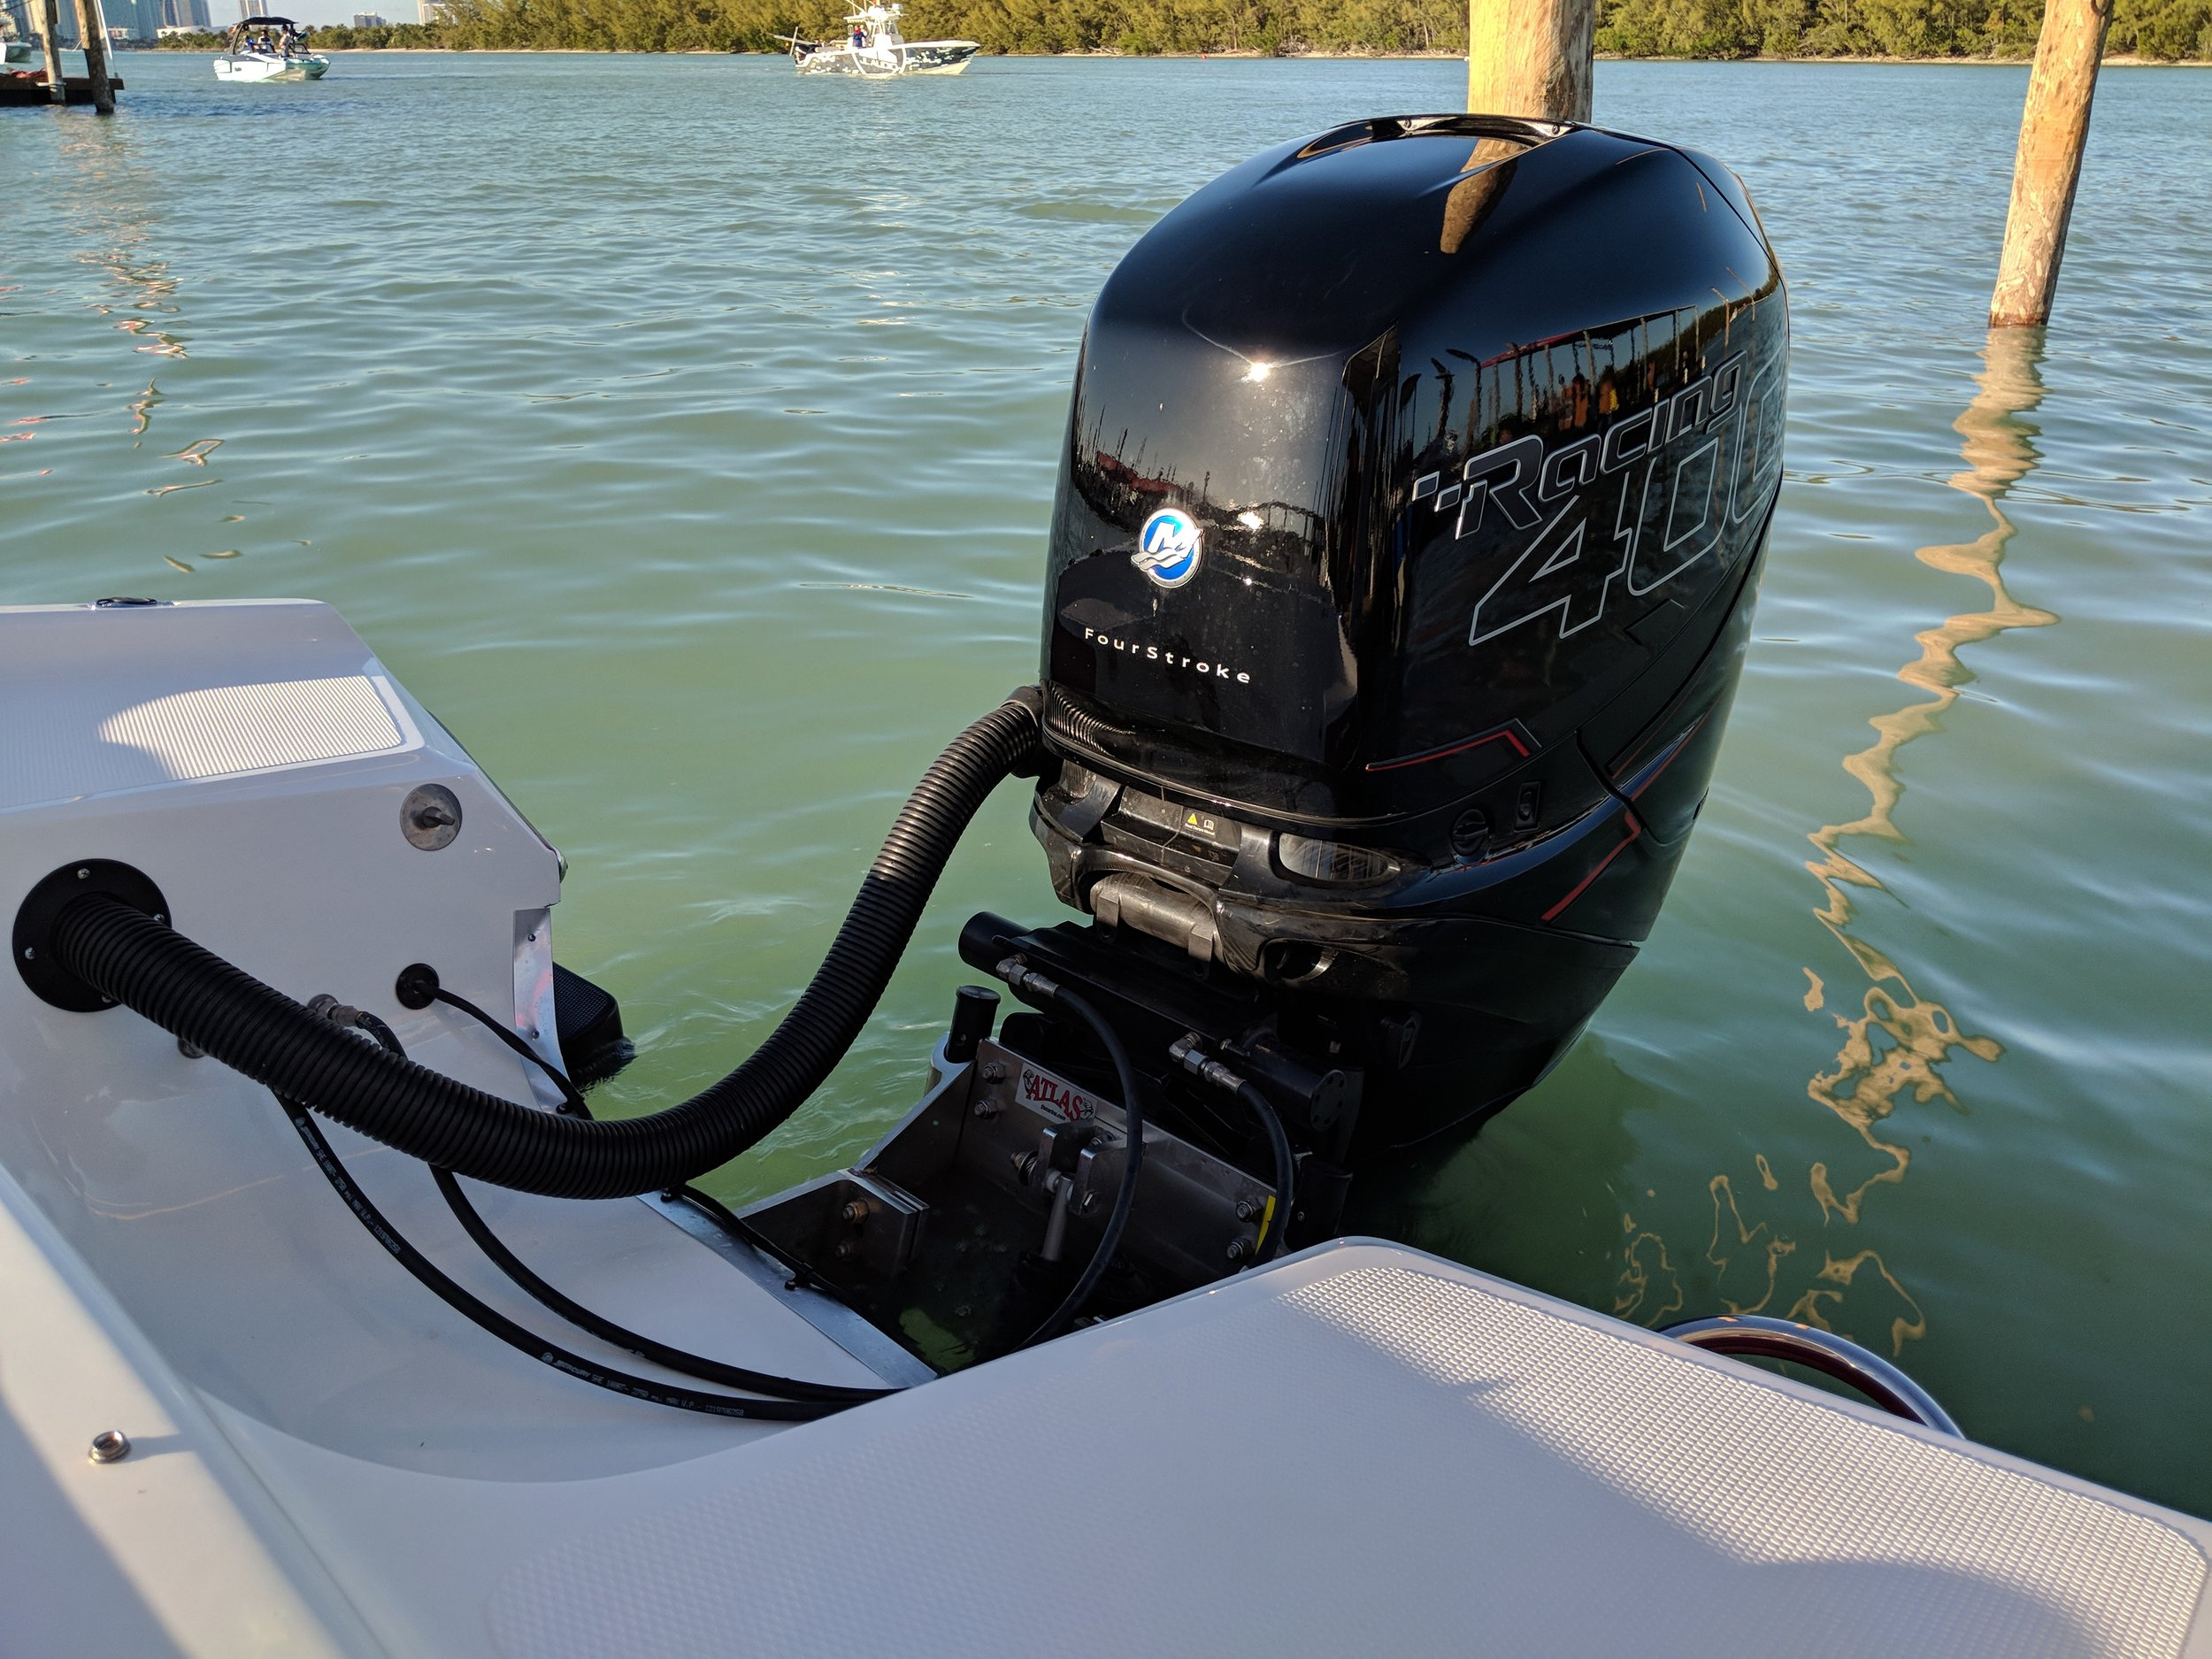 The hull design, weight of the engine, and use case all determine how much setback you might run. This Checkmate 2400 can use lots of setback and handle the weight of a heavy engine.